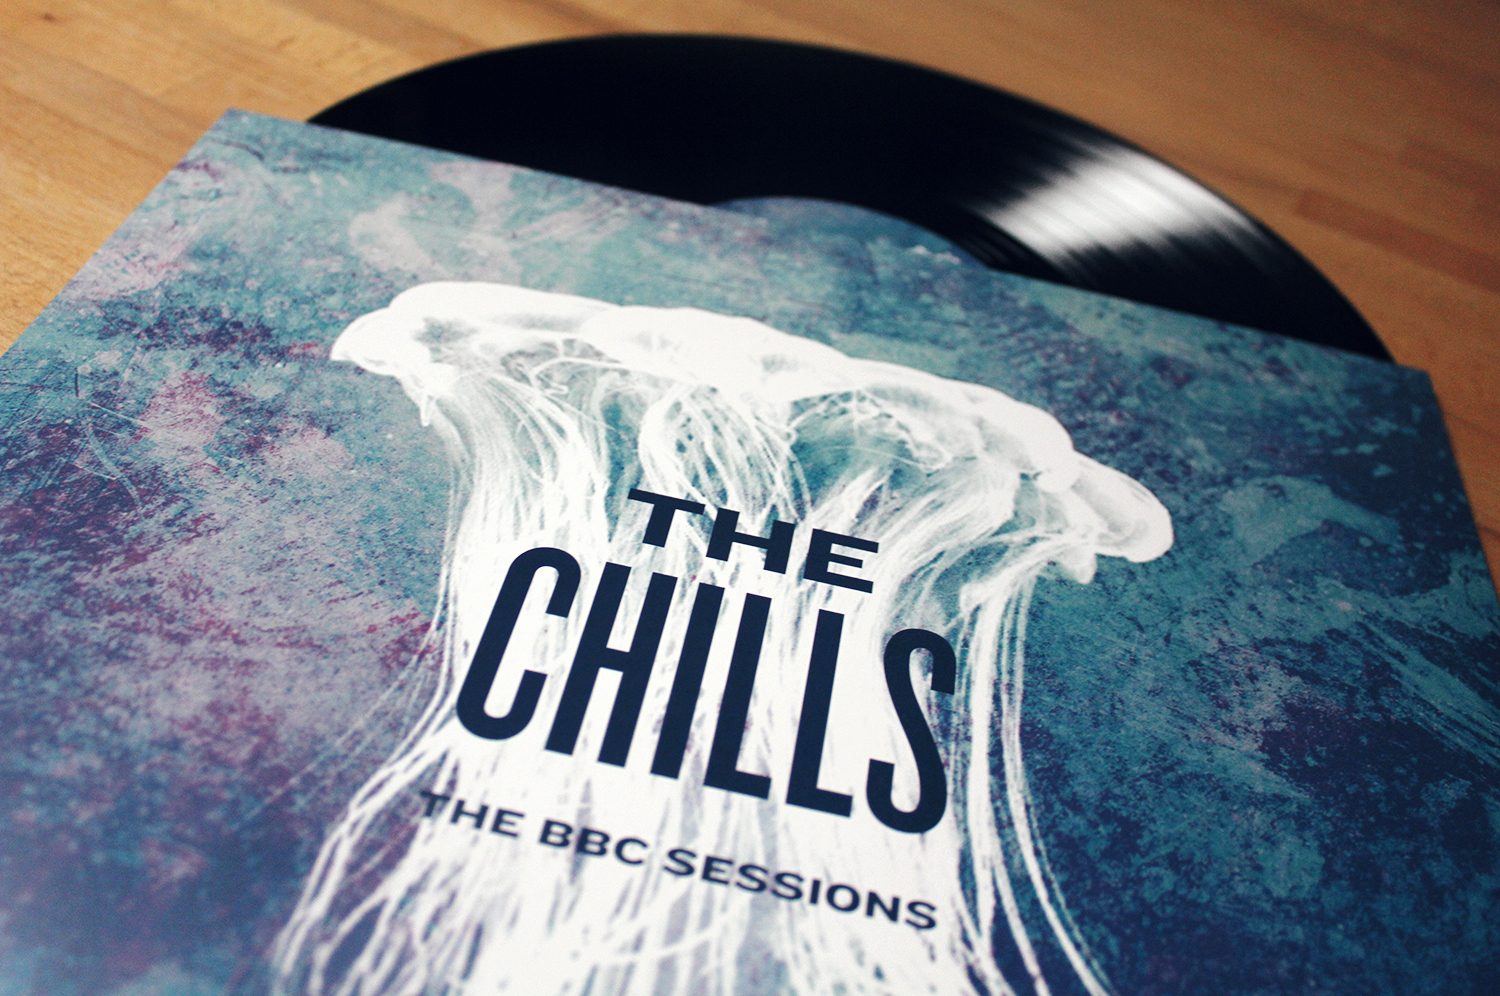 The Chills The Bbc Sessions Lp Fire Records